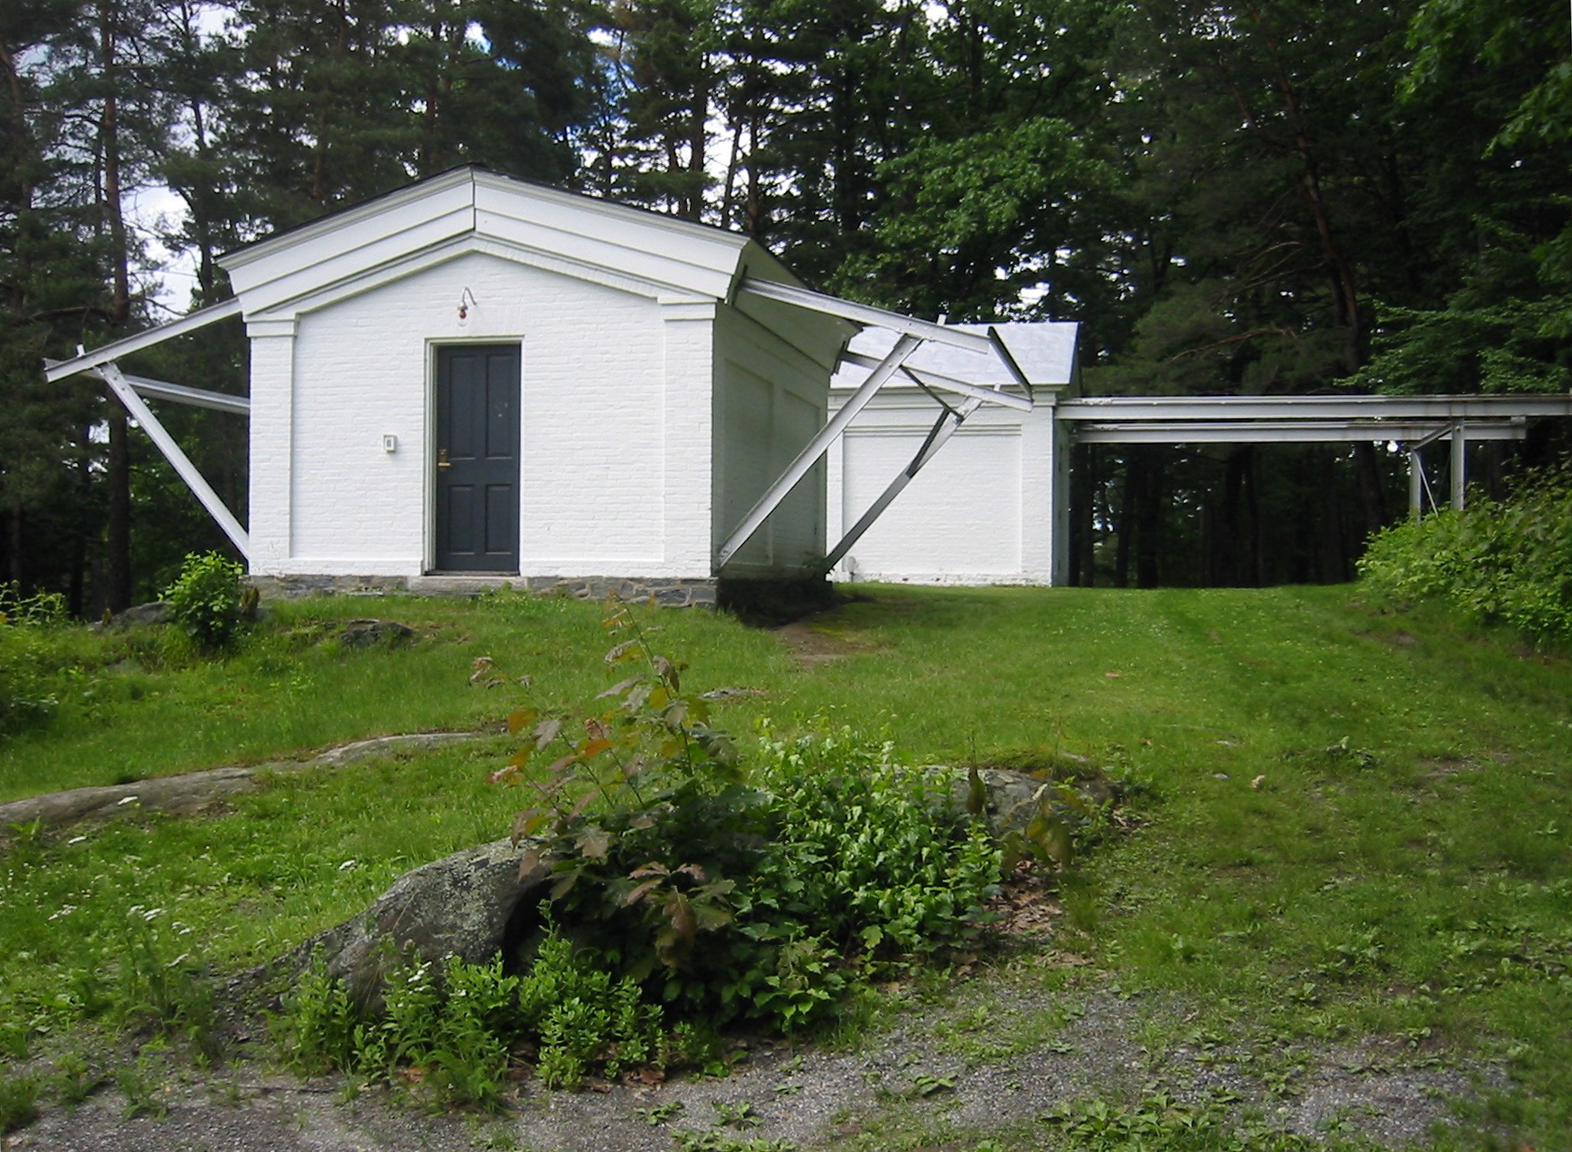 Shattuck Observatory, Meacham photo